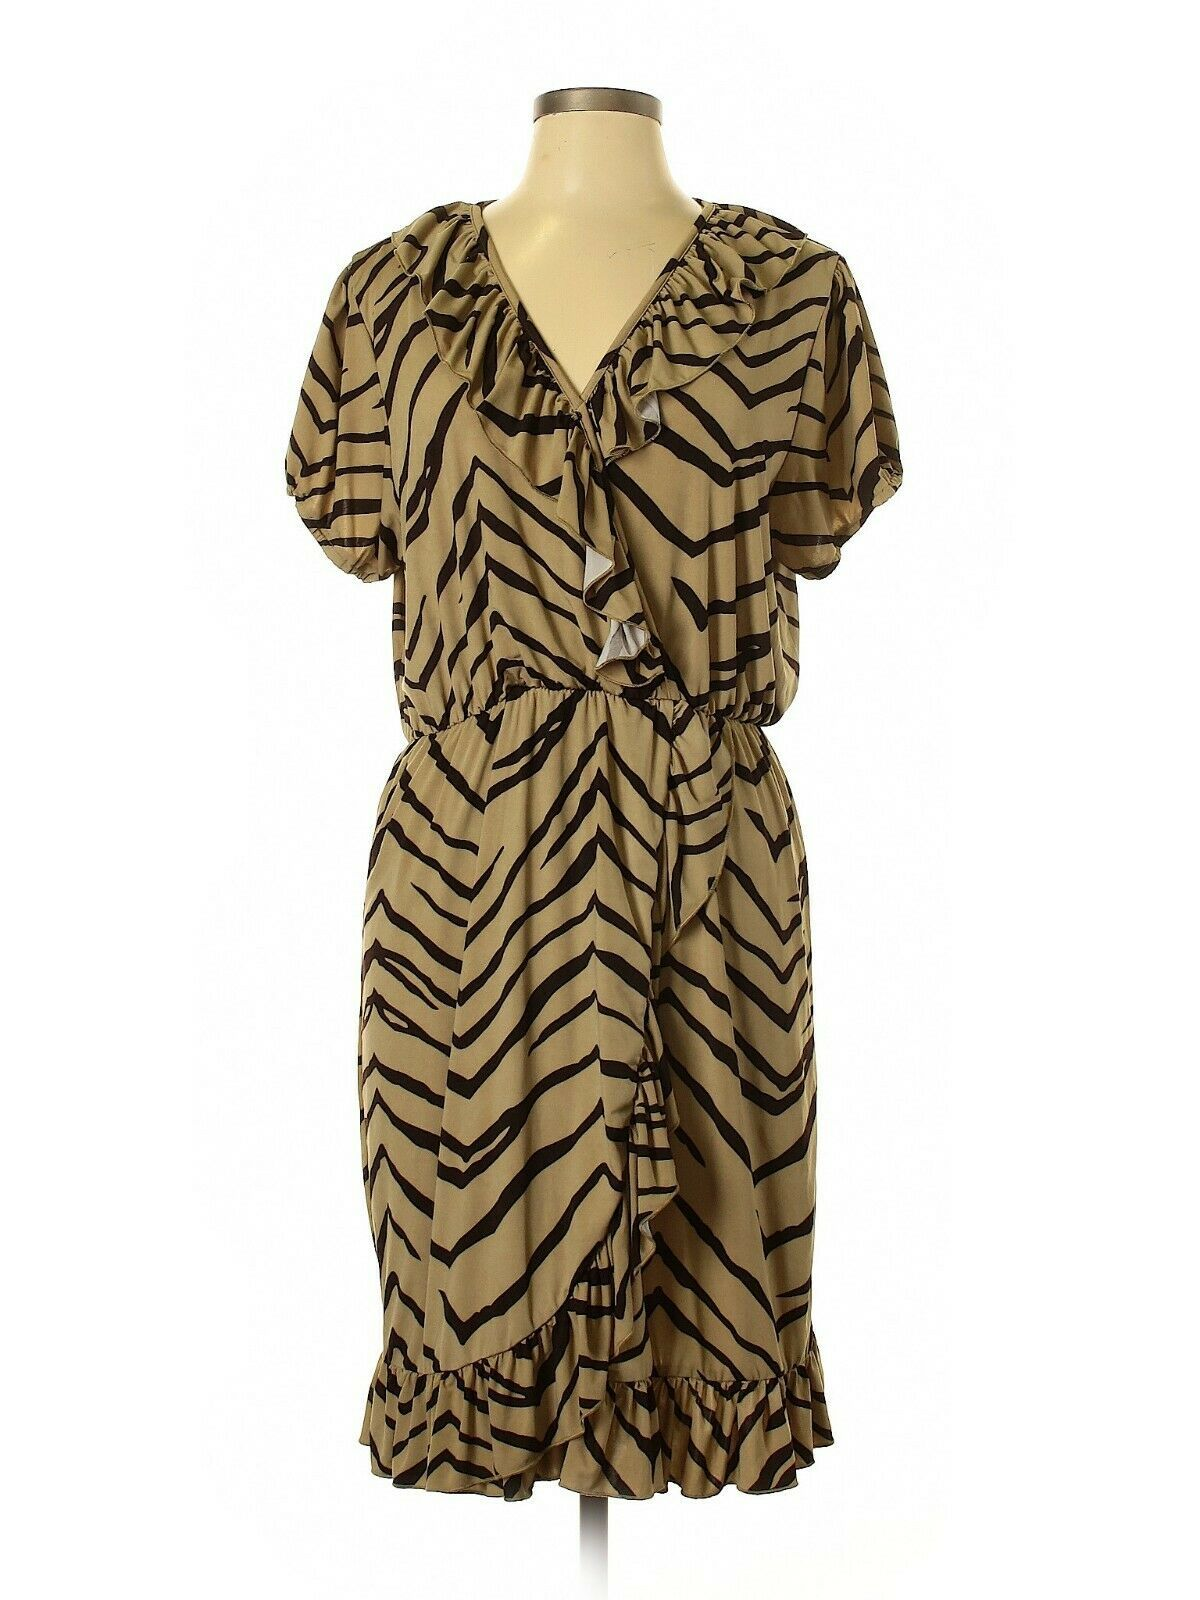 Primary image for Mocha and Chocolate Brown Chevron Print Dress size XL Pre-Owned